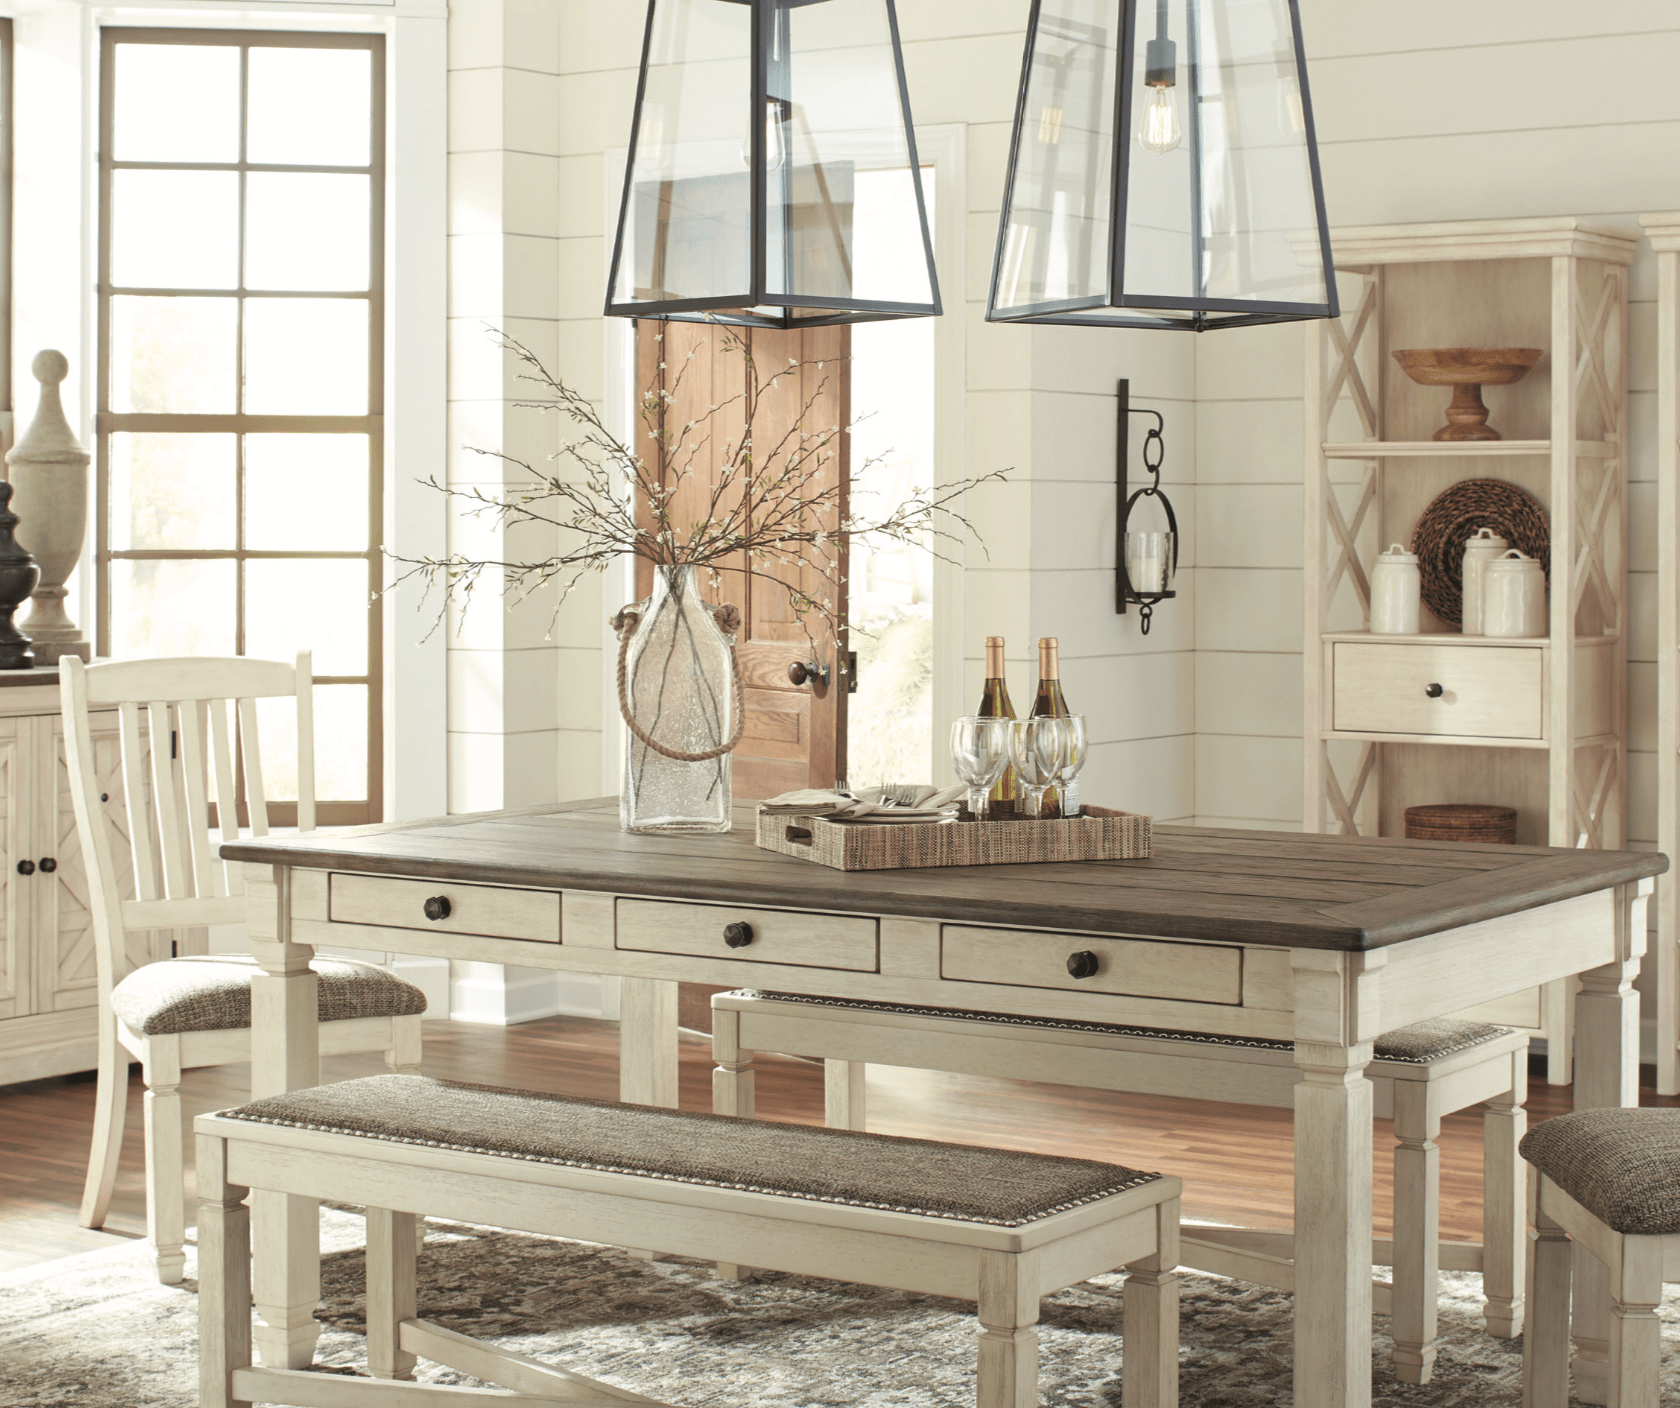 Farmhouse Style: Where to Buy Modern Farmhouse Furniture and Decor